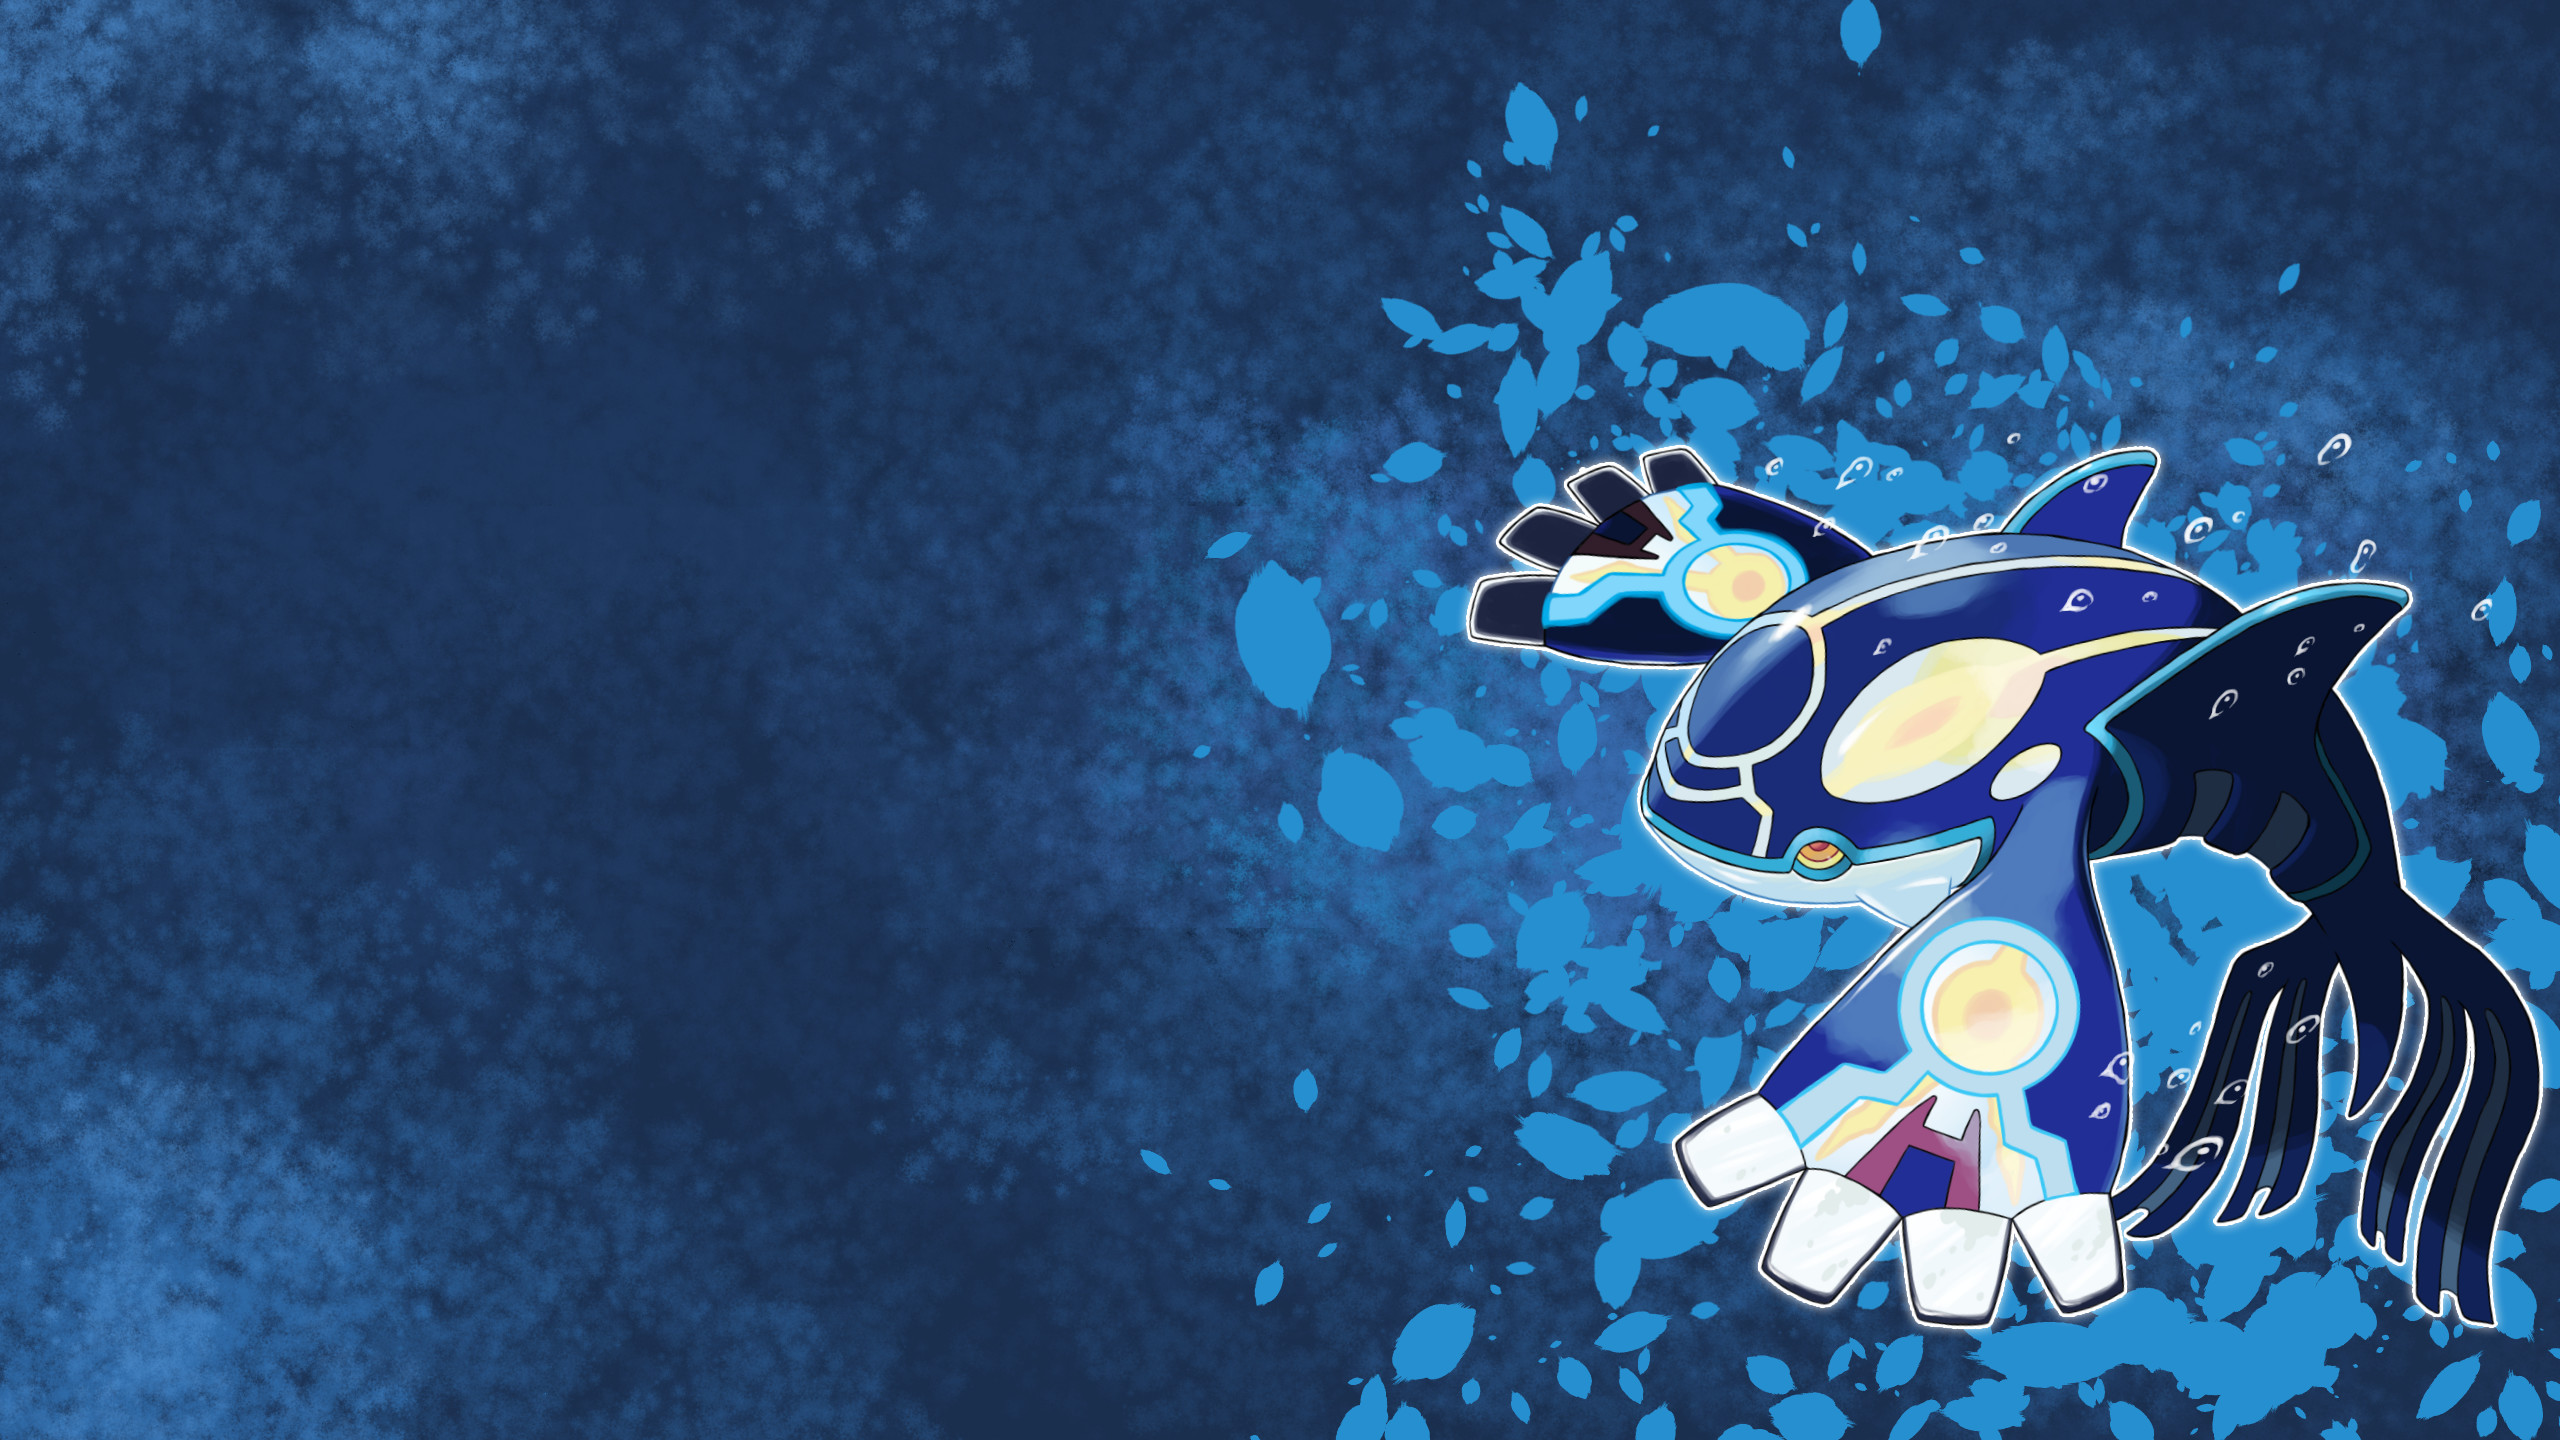 Res: 2560x1440, Wallpaper Primal Kyogre by AlouNea on DeviantArt